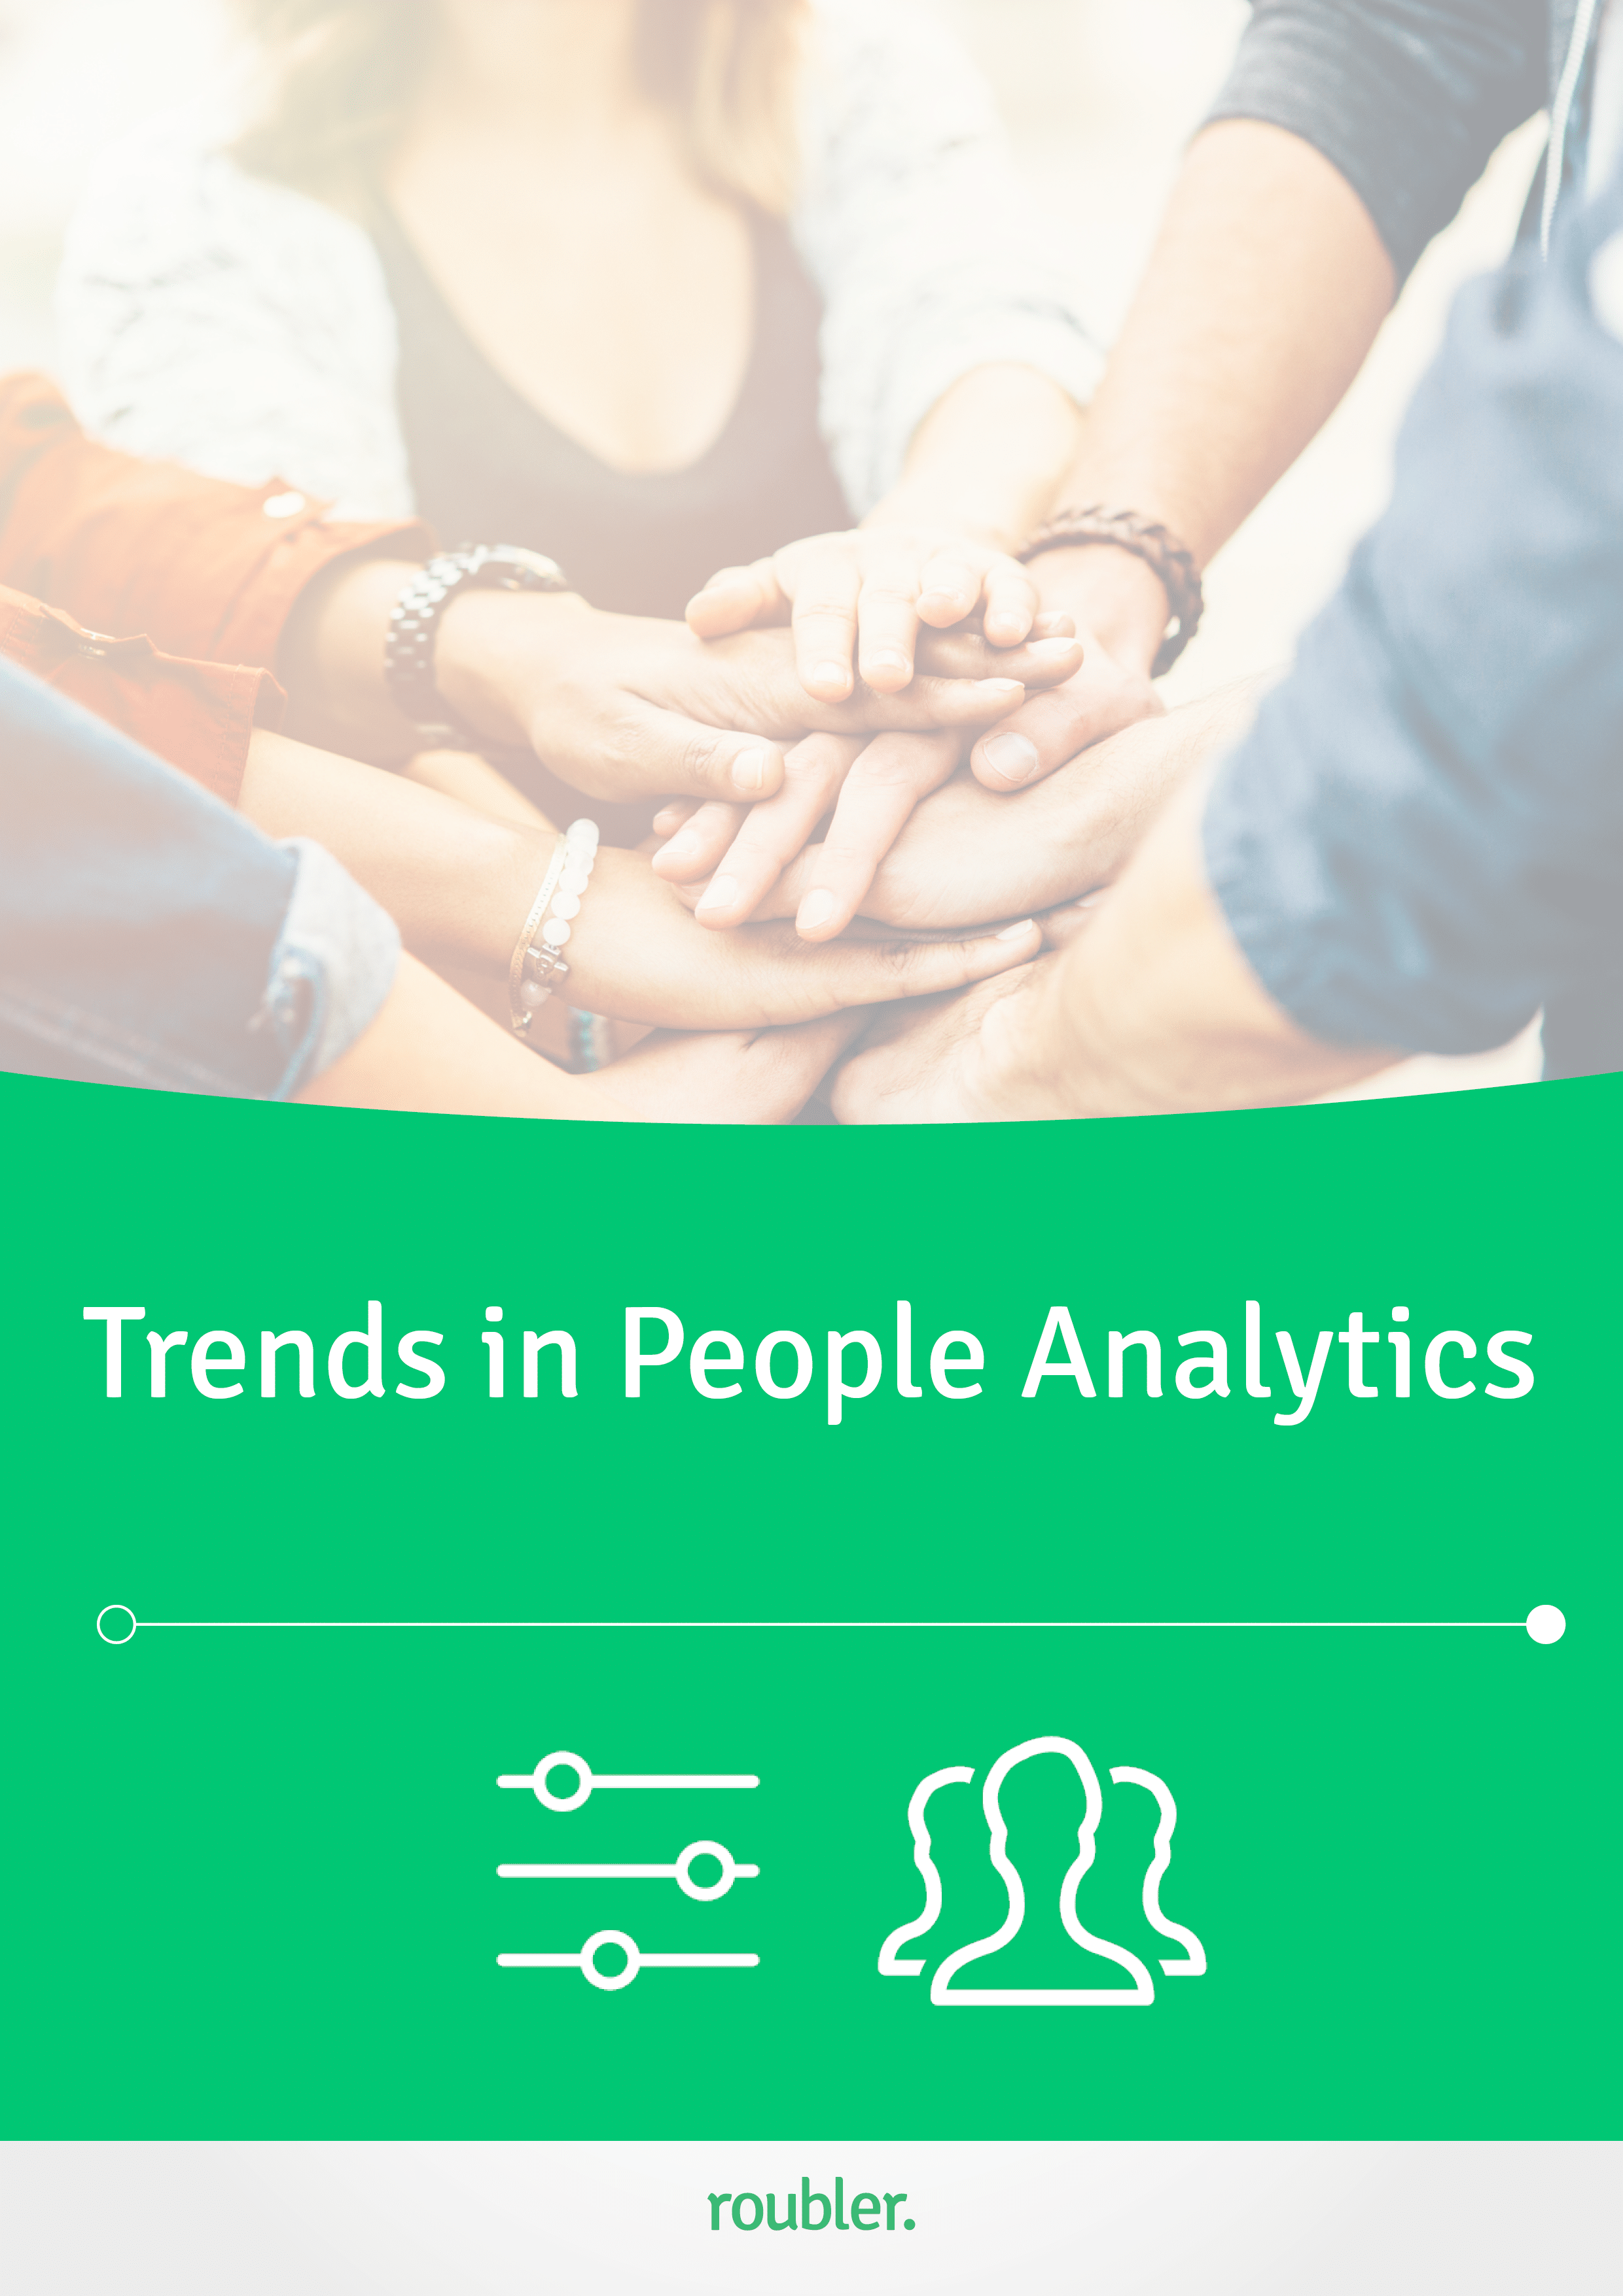 Trends in People Analytics